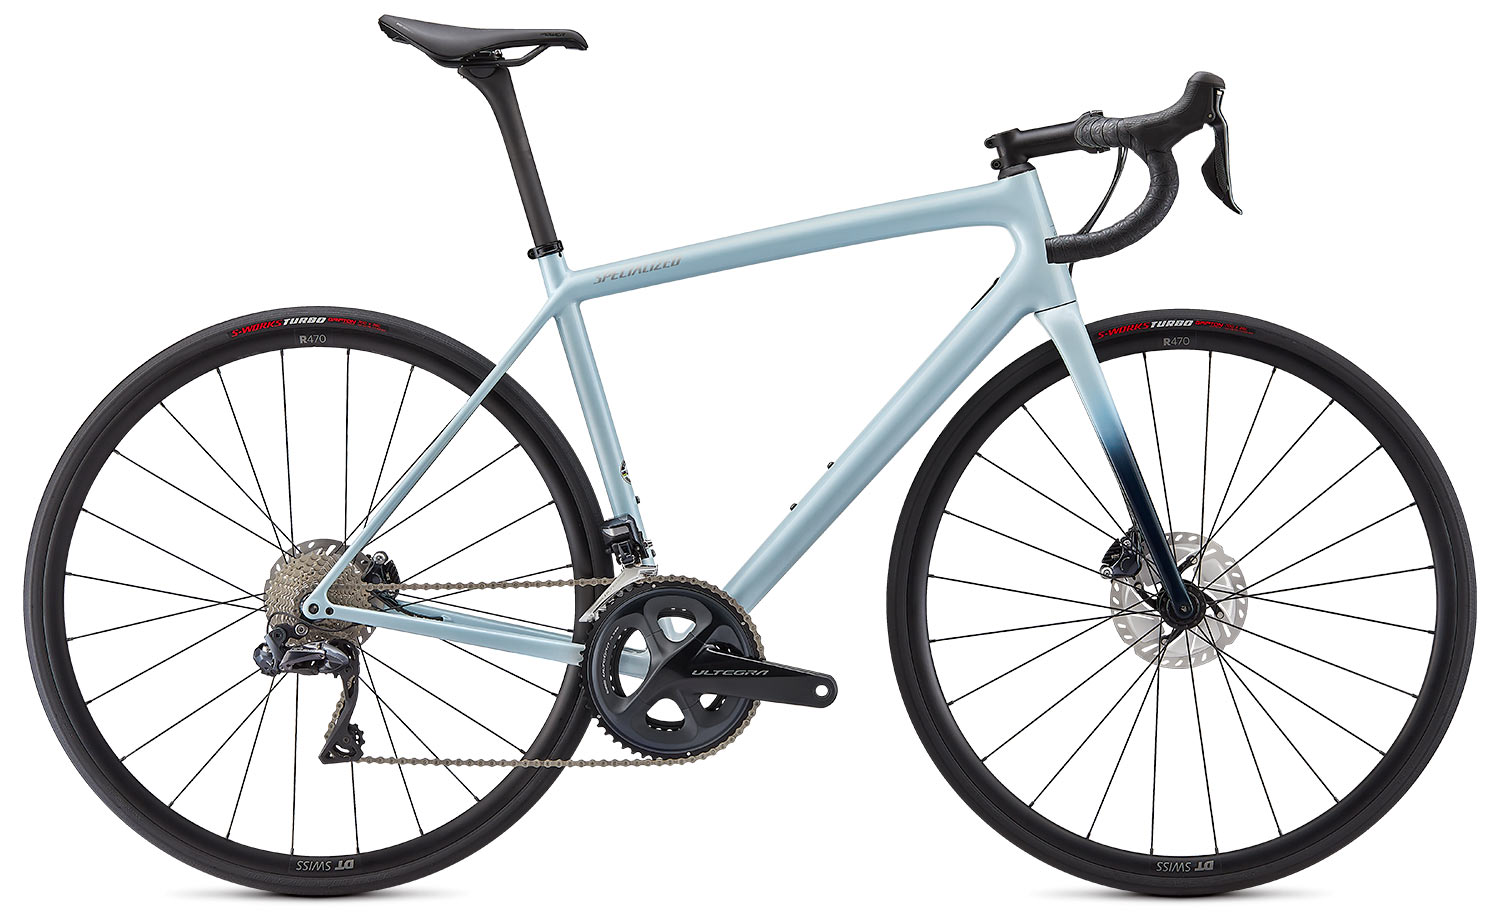 new specialized aethos lightweight carbon road bike in expert build trim and ice blue fade paint scheme